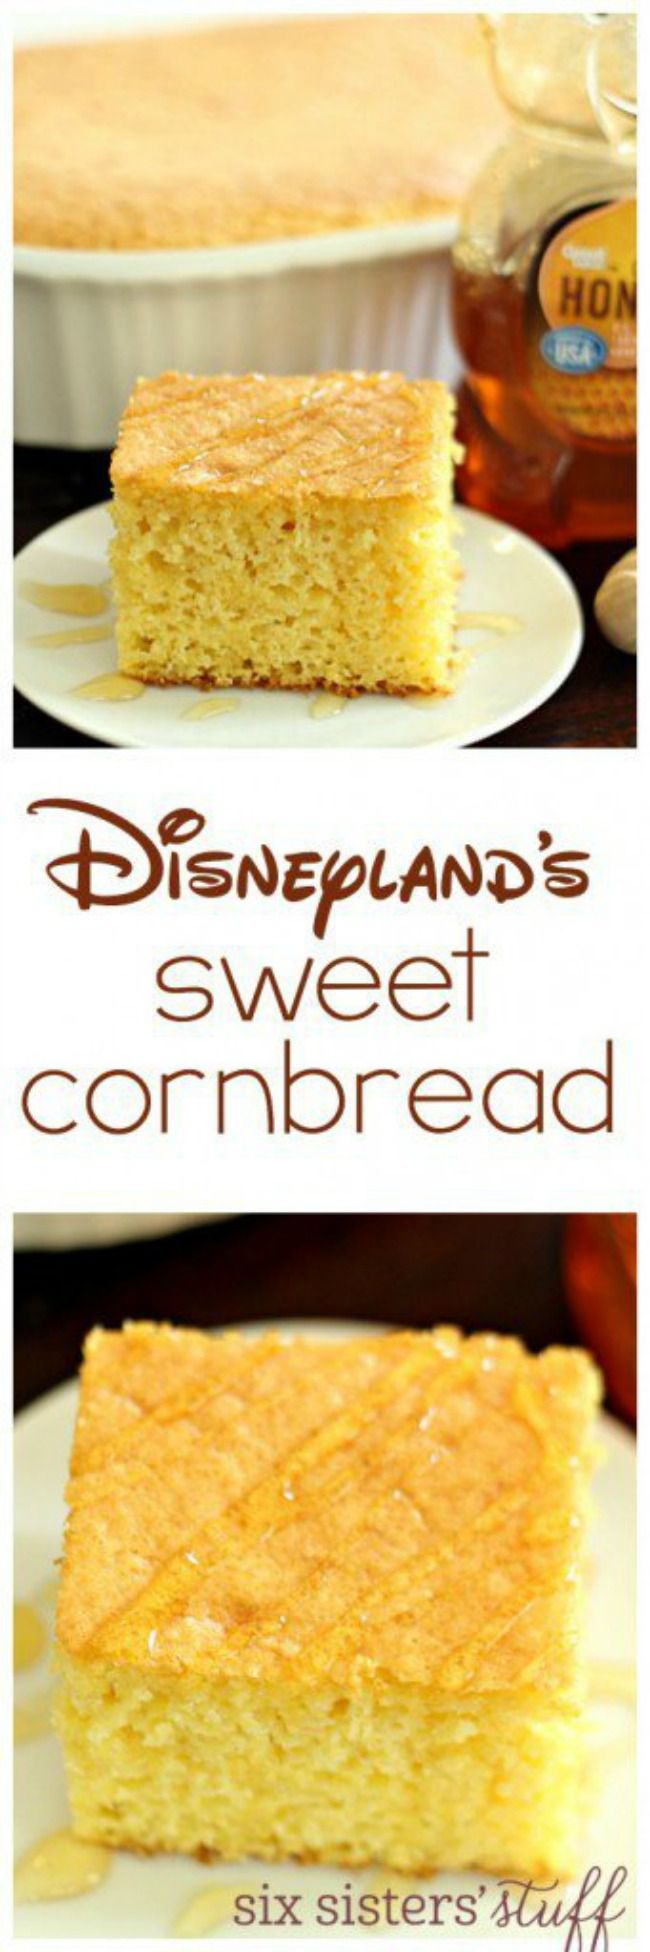 The 11 Best Disney Recipes - Disneyland's Sweet Cornbread Recipe